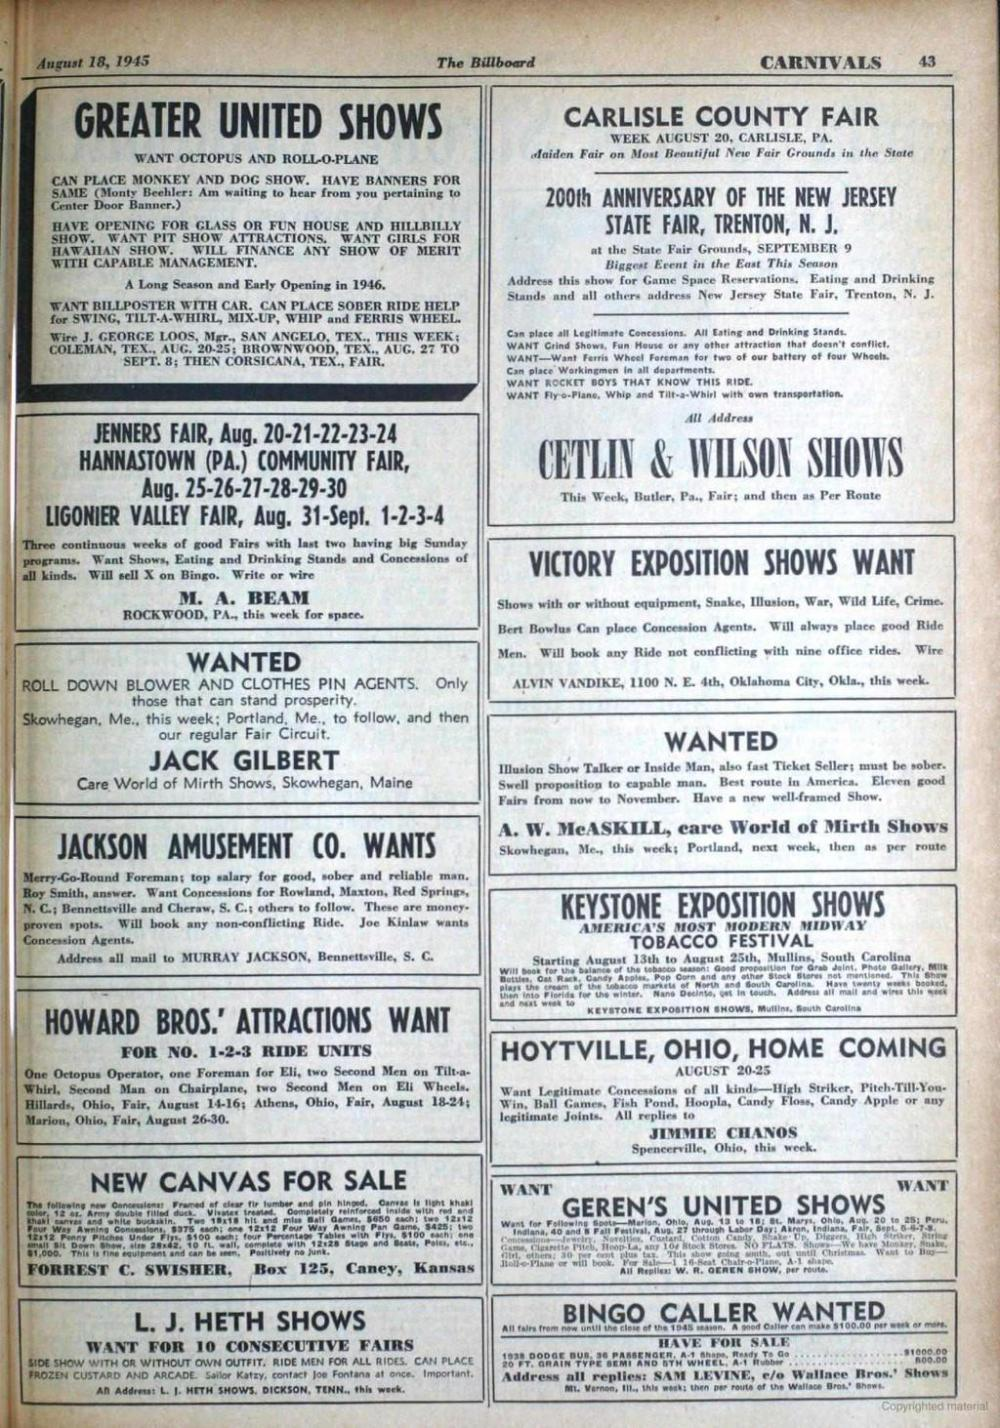 medium resolution of august 18 1945 the billboard carnivals 43 greater united shows want octopus and rollo